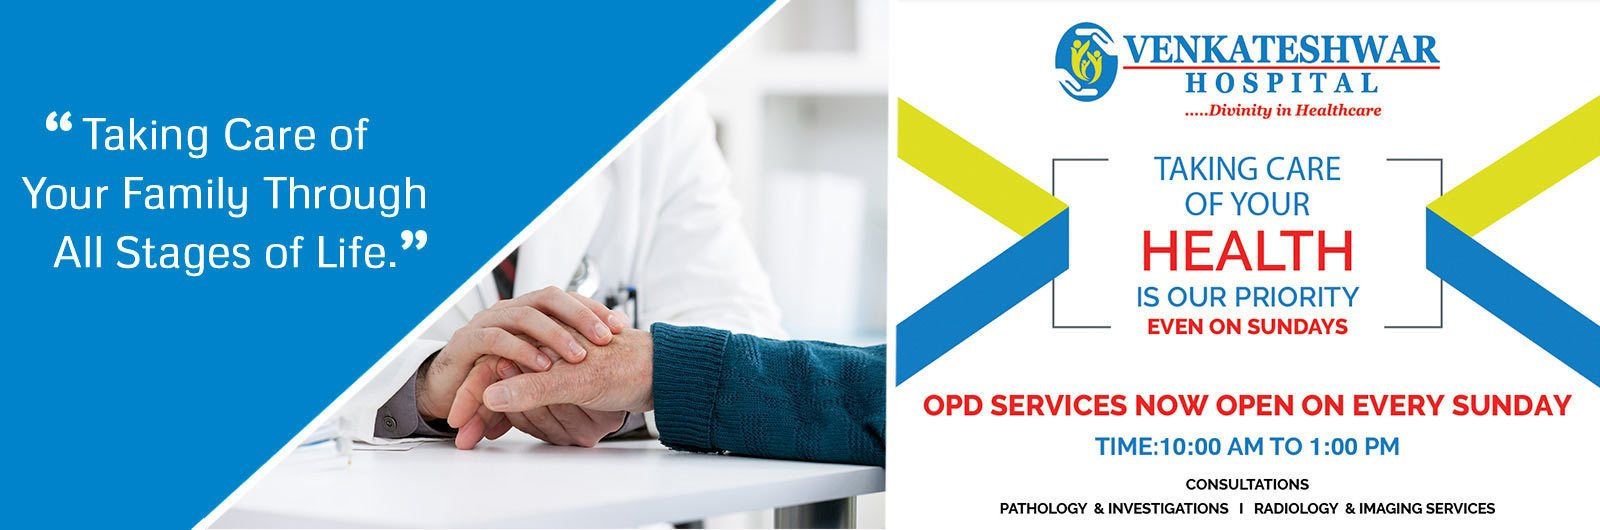 OPD Services Now Ope on Every Sunday   Health Services by Venkateshwar Hospital